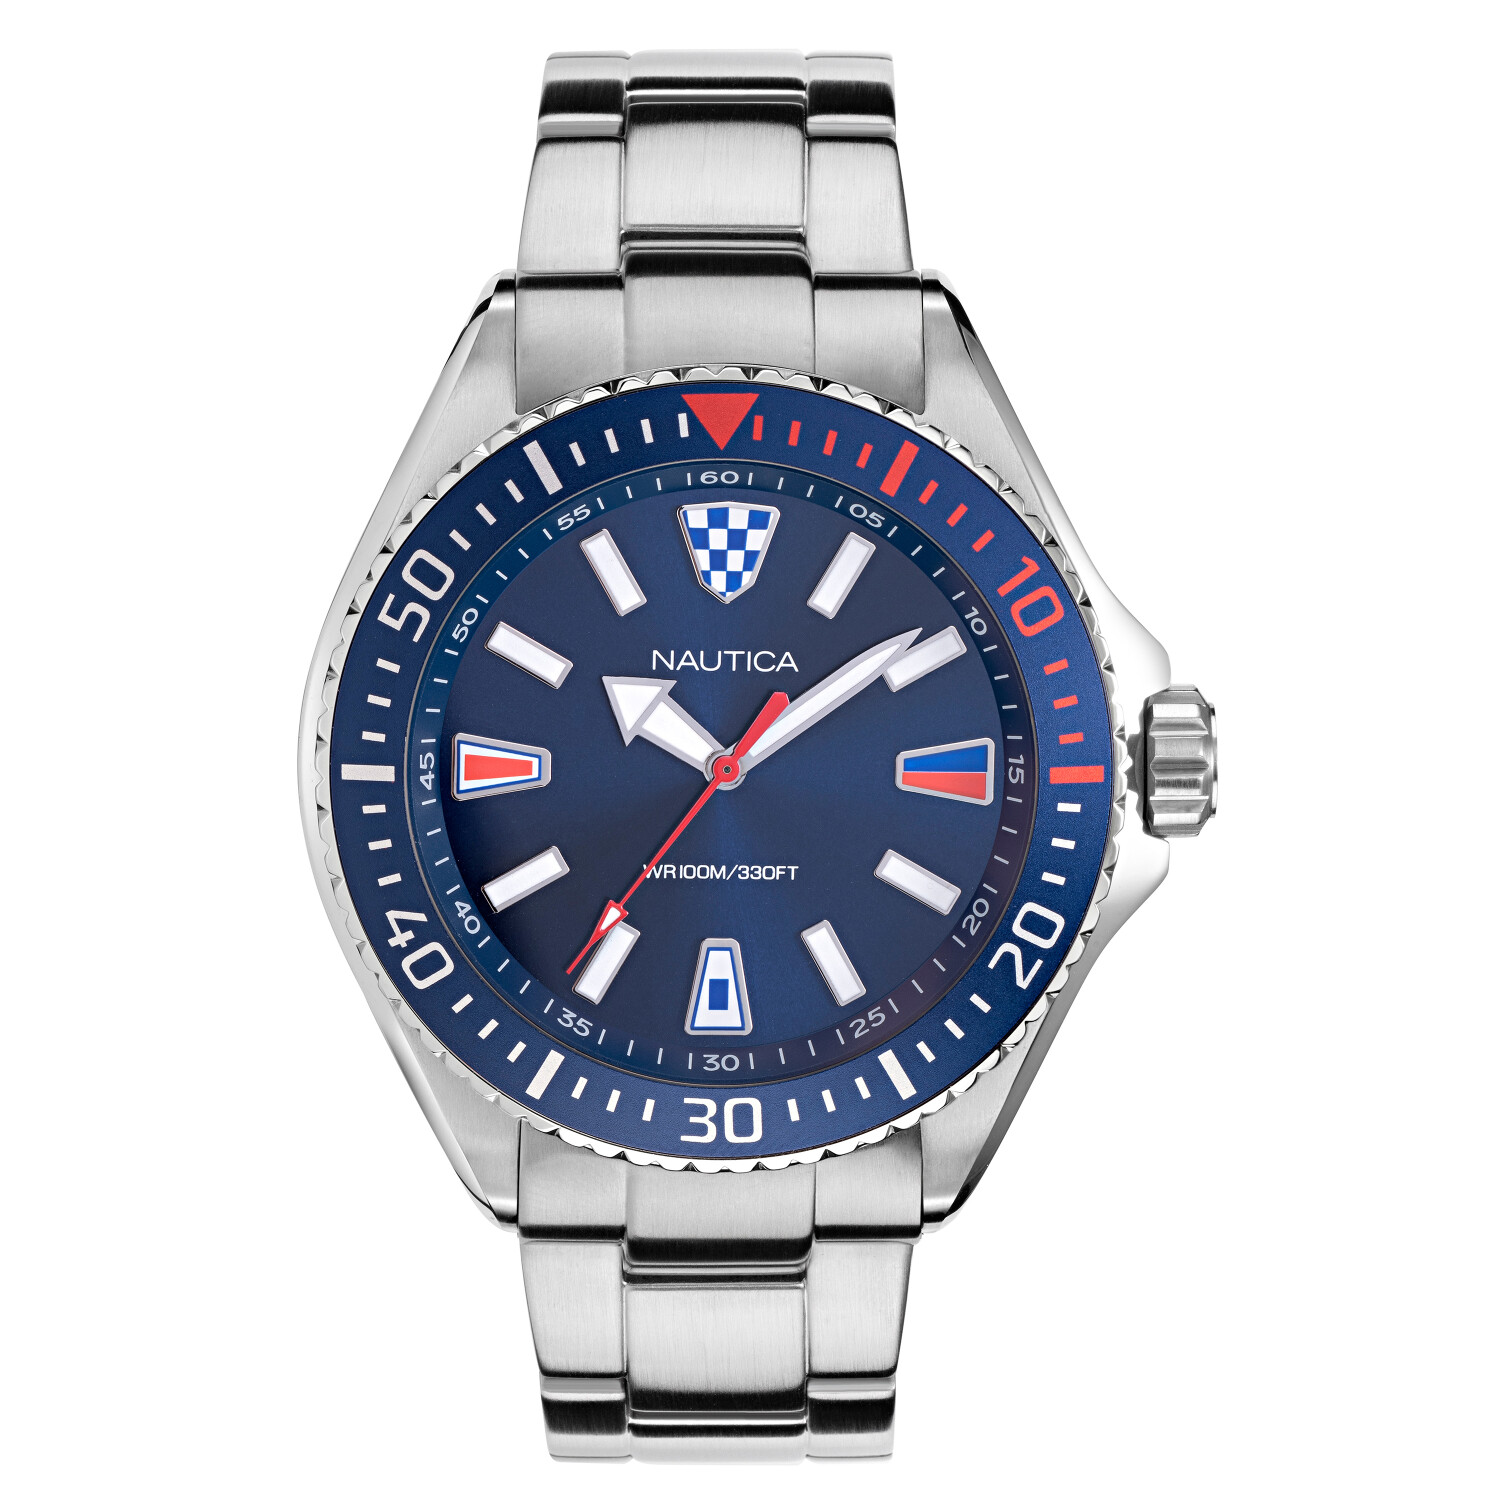 Nautica Watch NAPCPS904 Crandon Park Beach, Analog, Water Resistant, Stainless Steel Strap, Deployment Buckle, Luminous, Silver